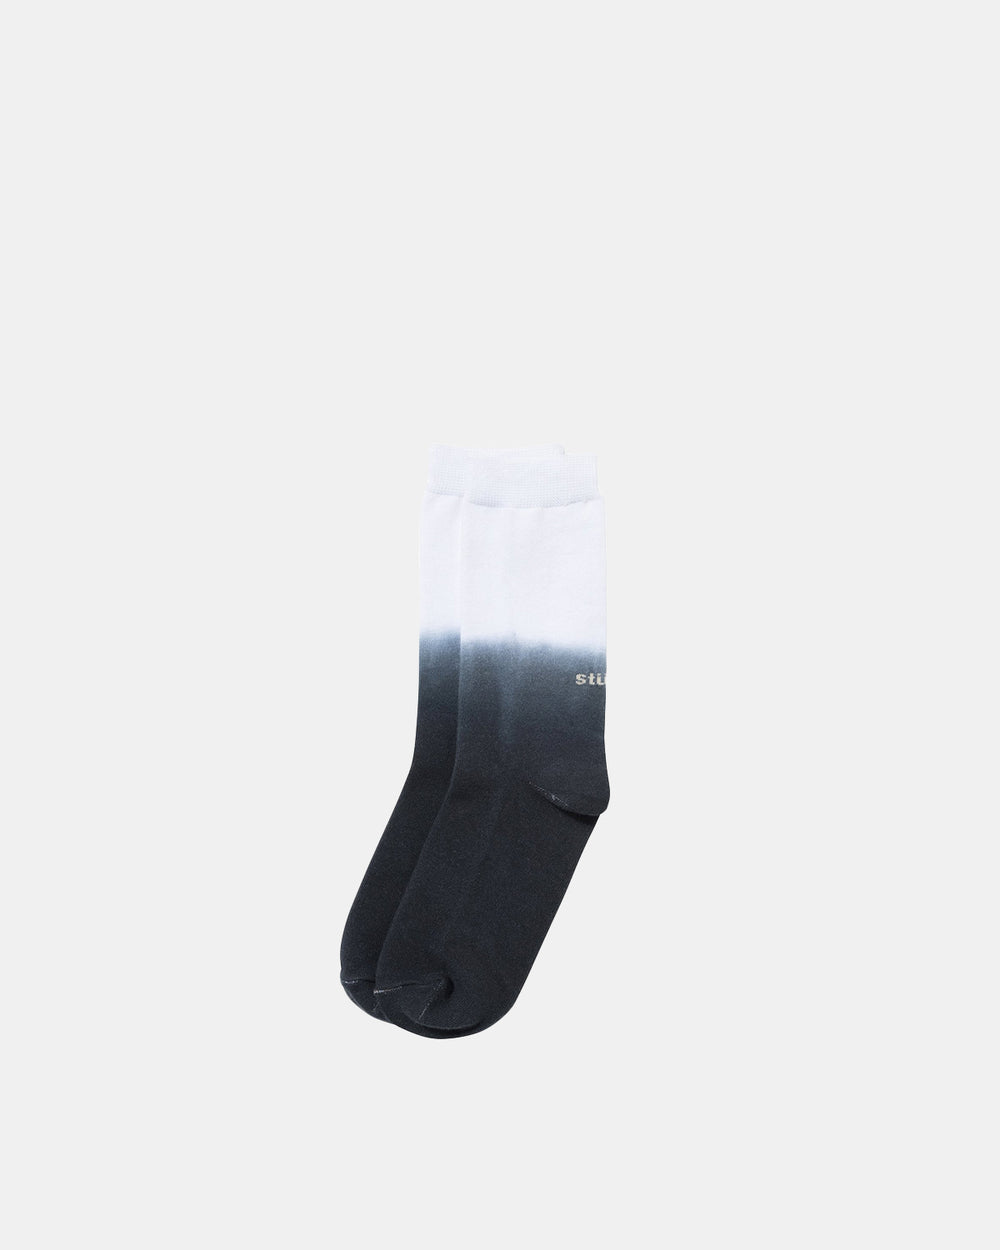 Stussy - Dip Dye Everyday Socks (Black)